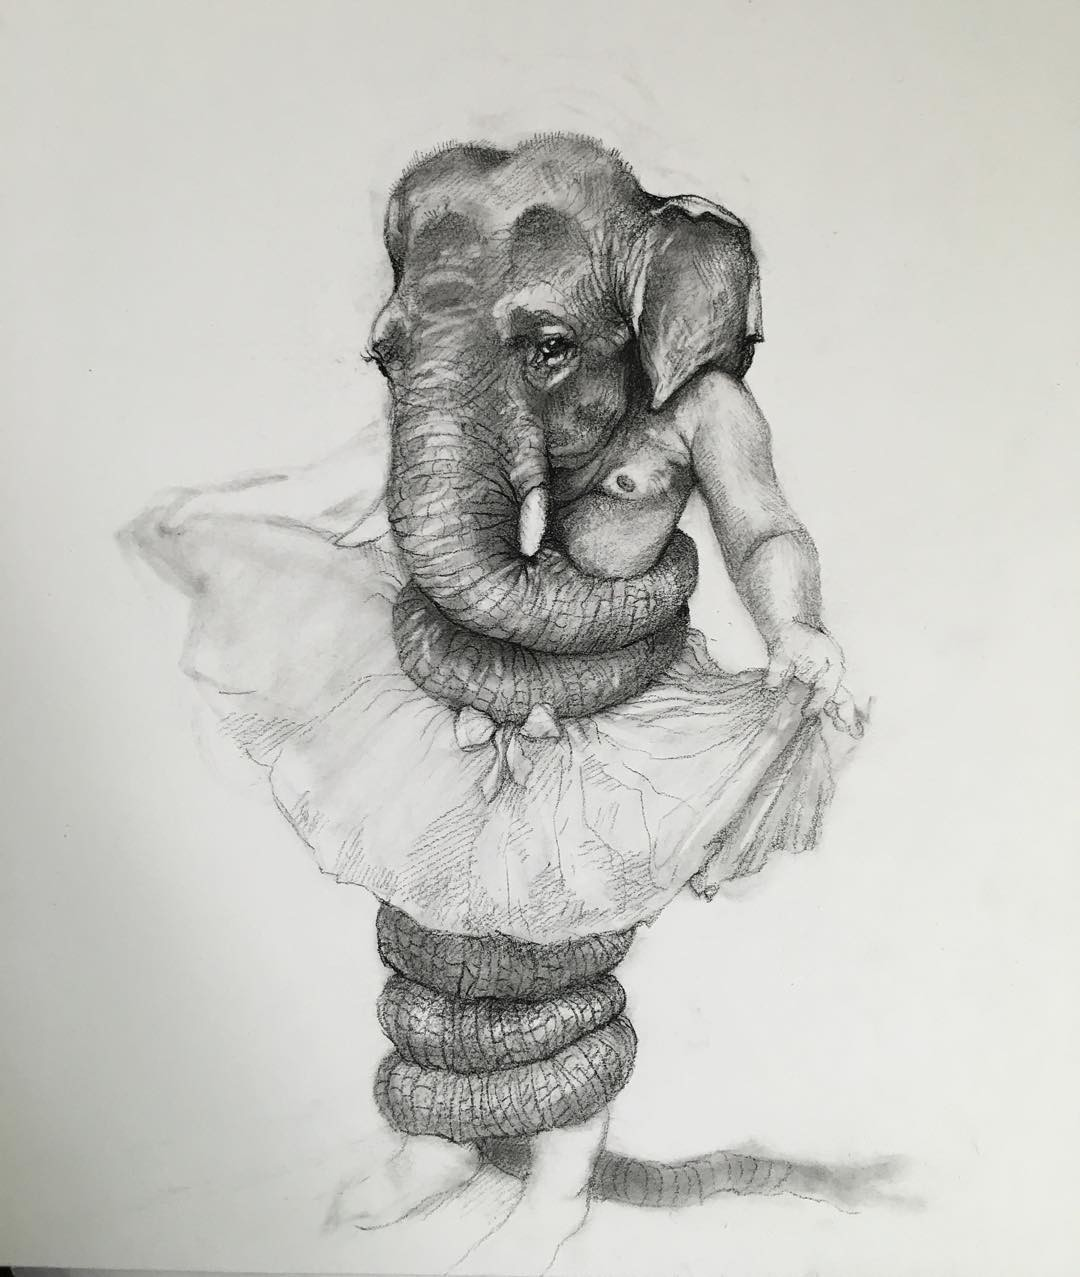 elephant man pencil drawing by adonna khare